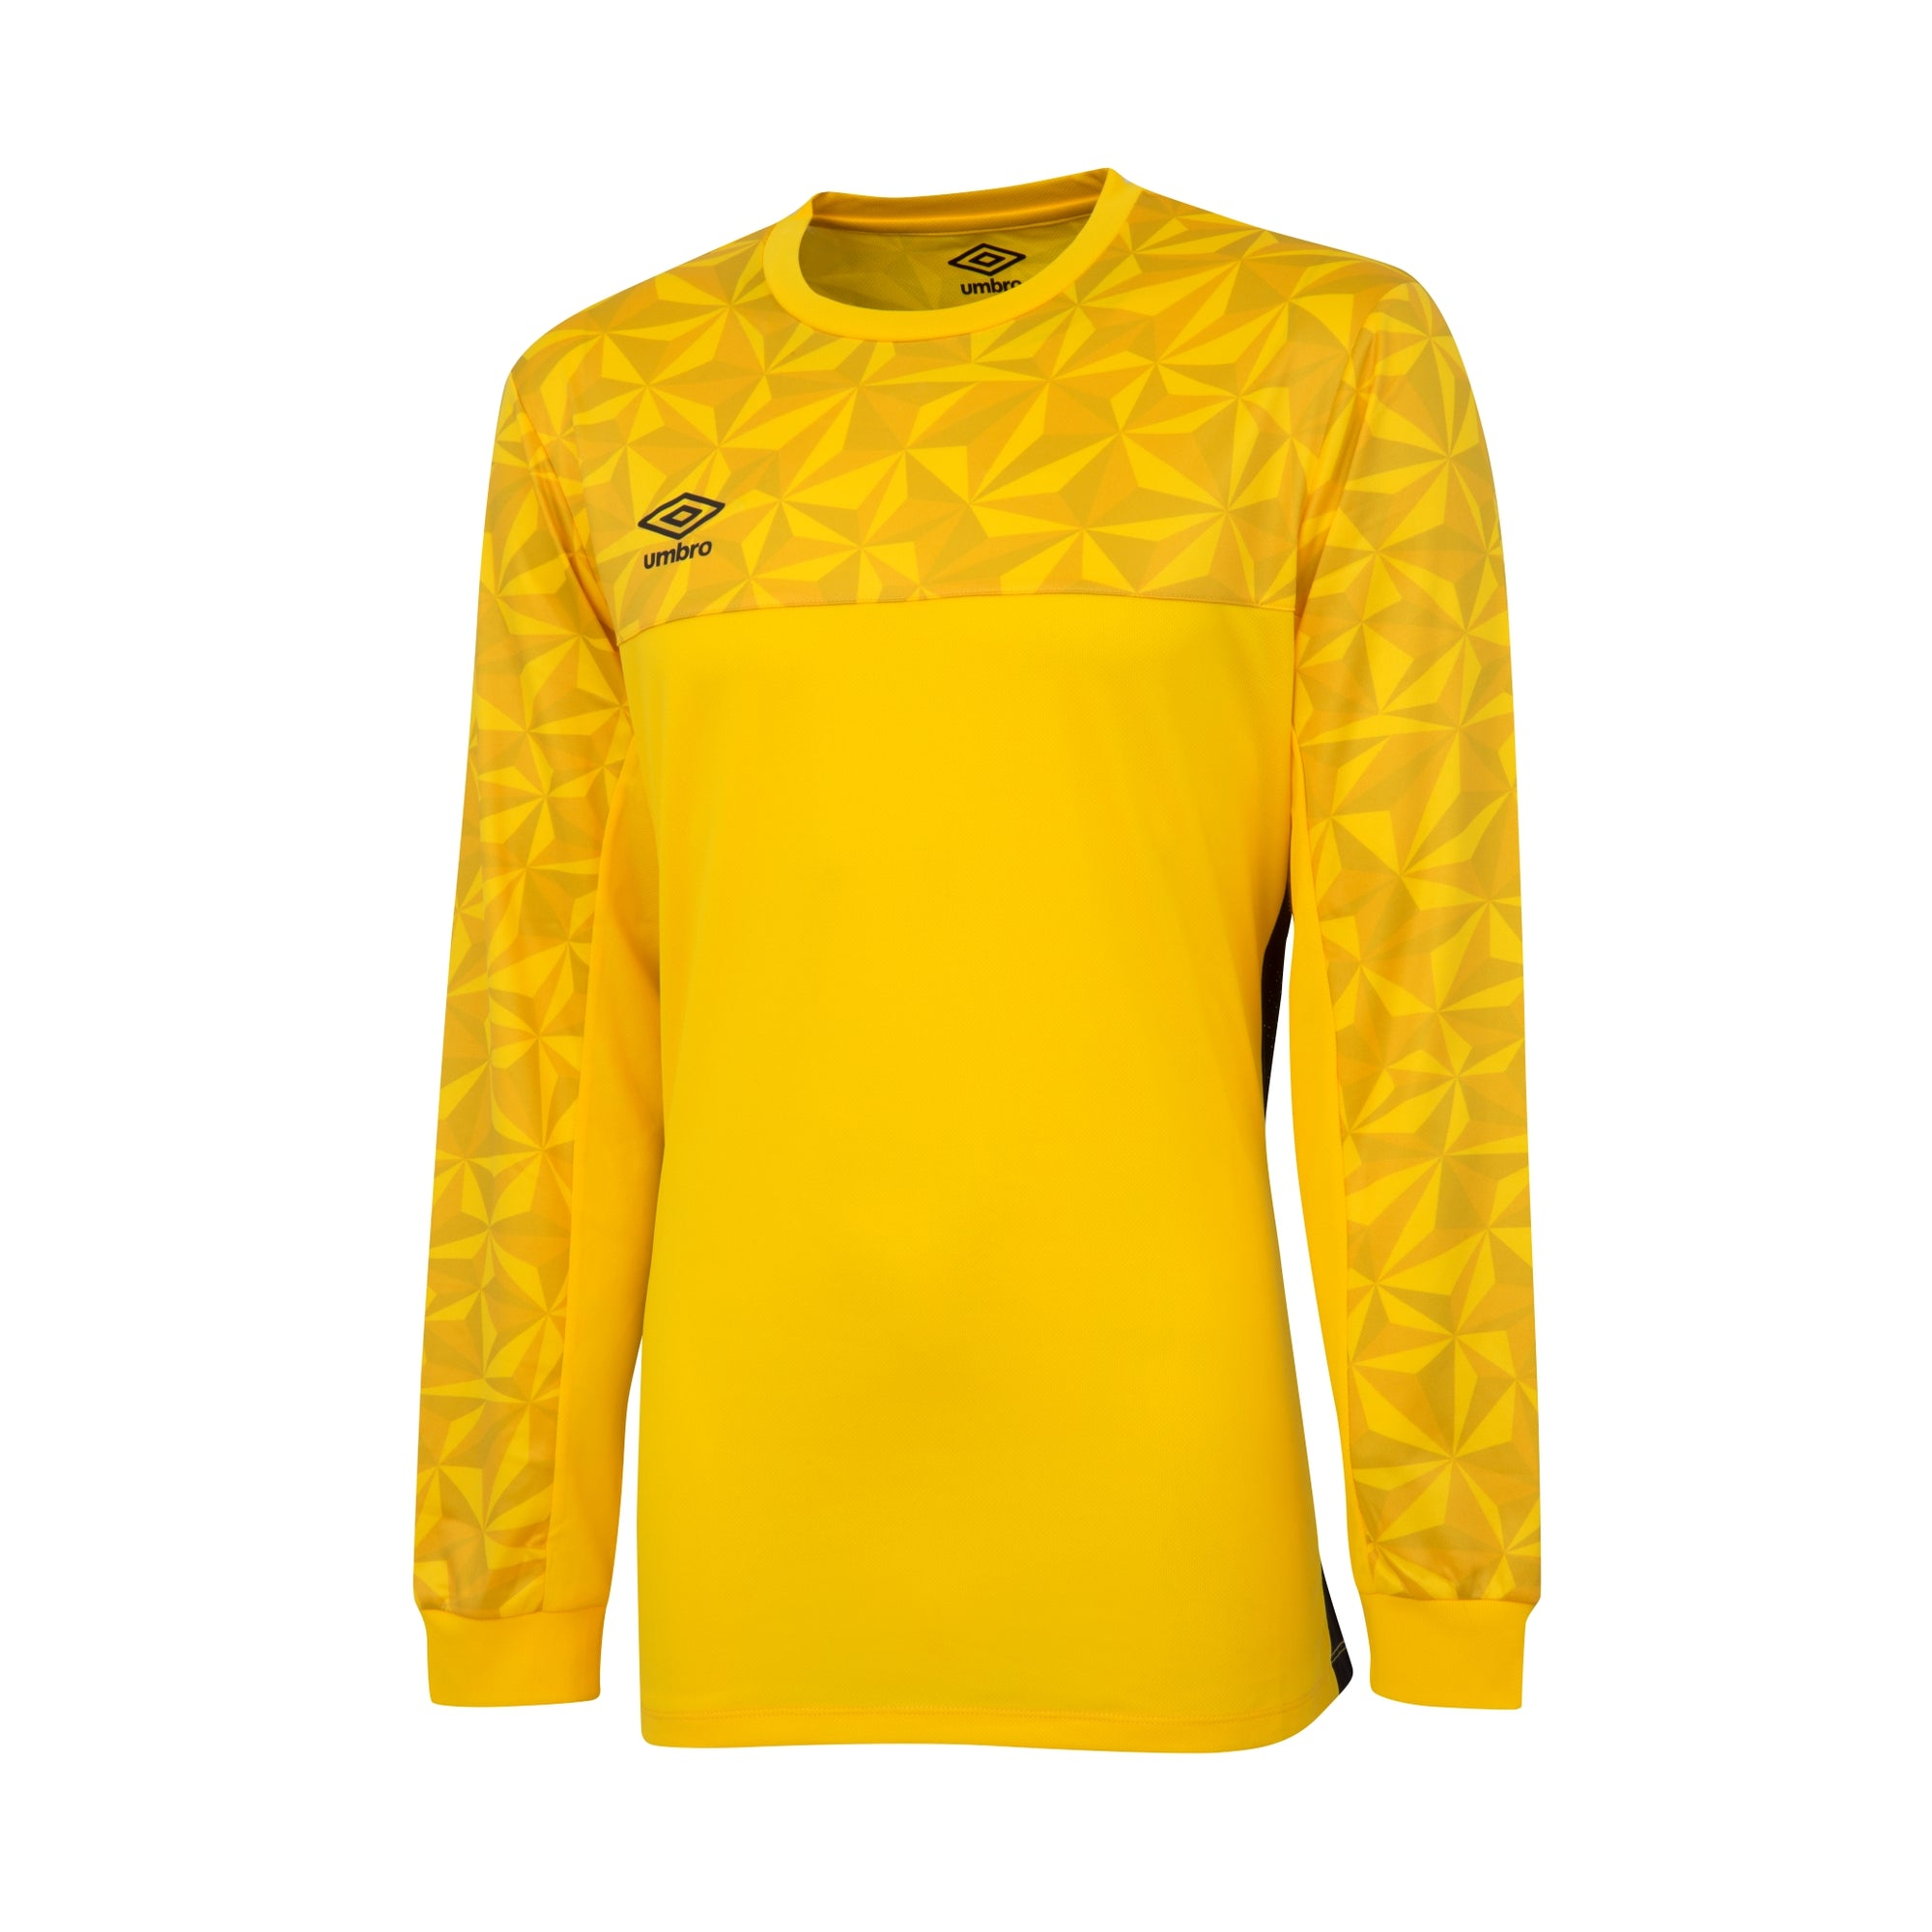 Umbro Portero LS Jersey - Yellow/Black